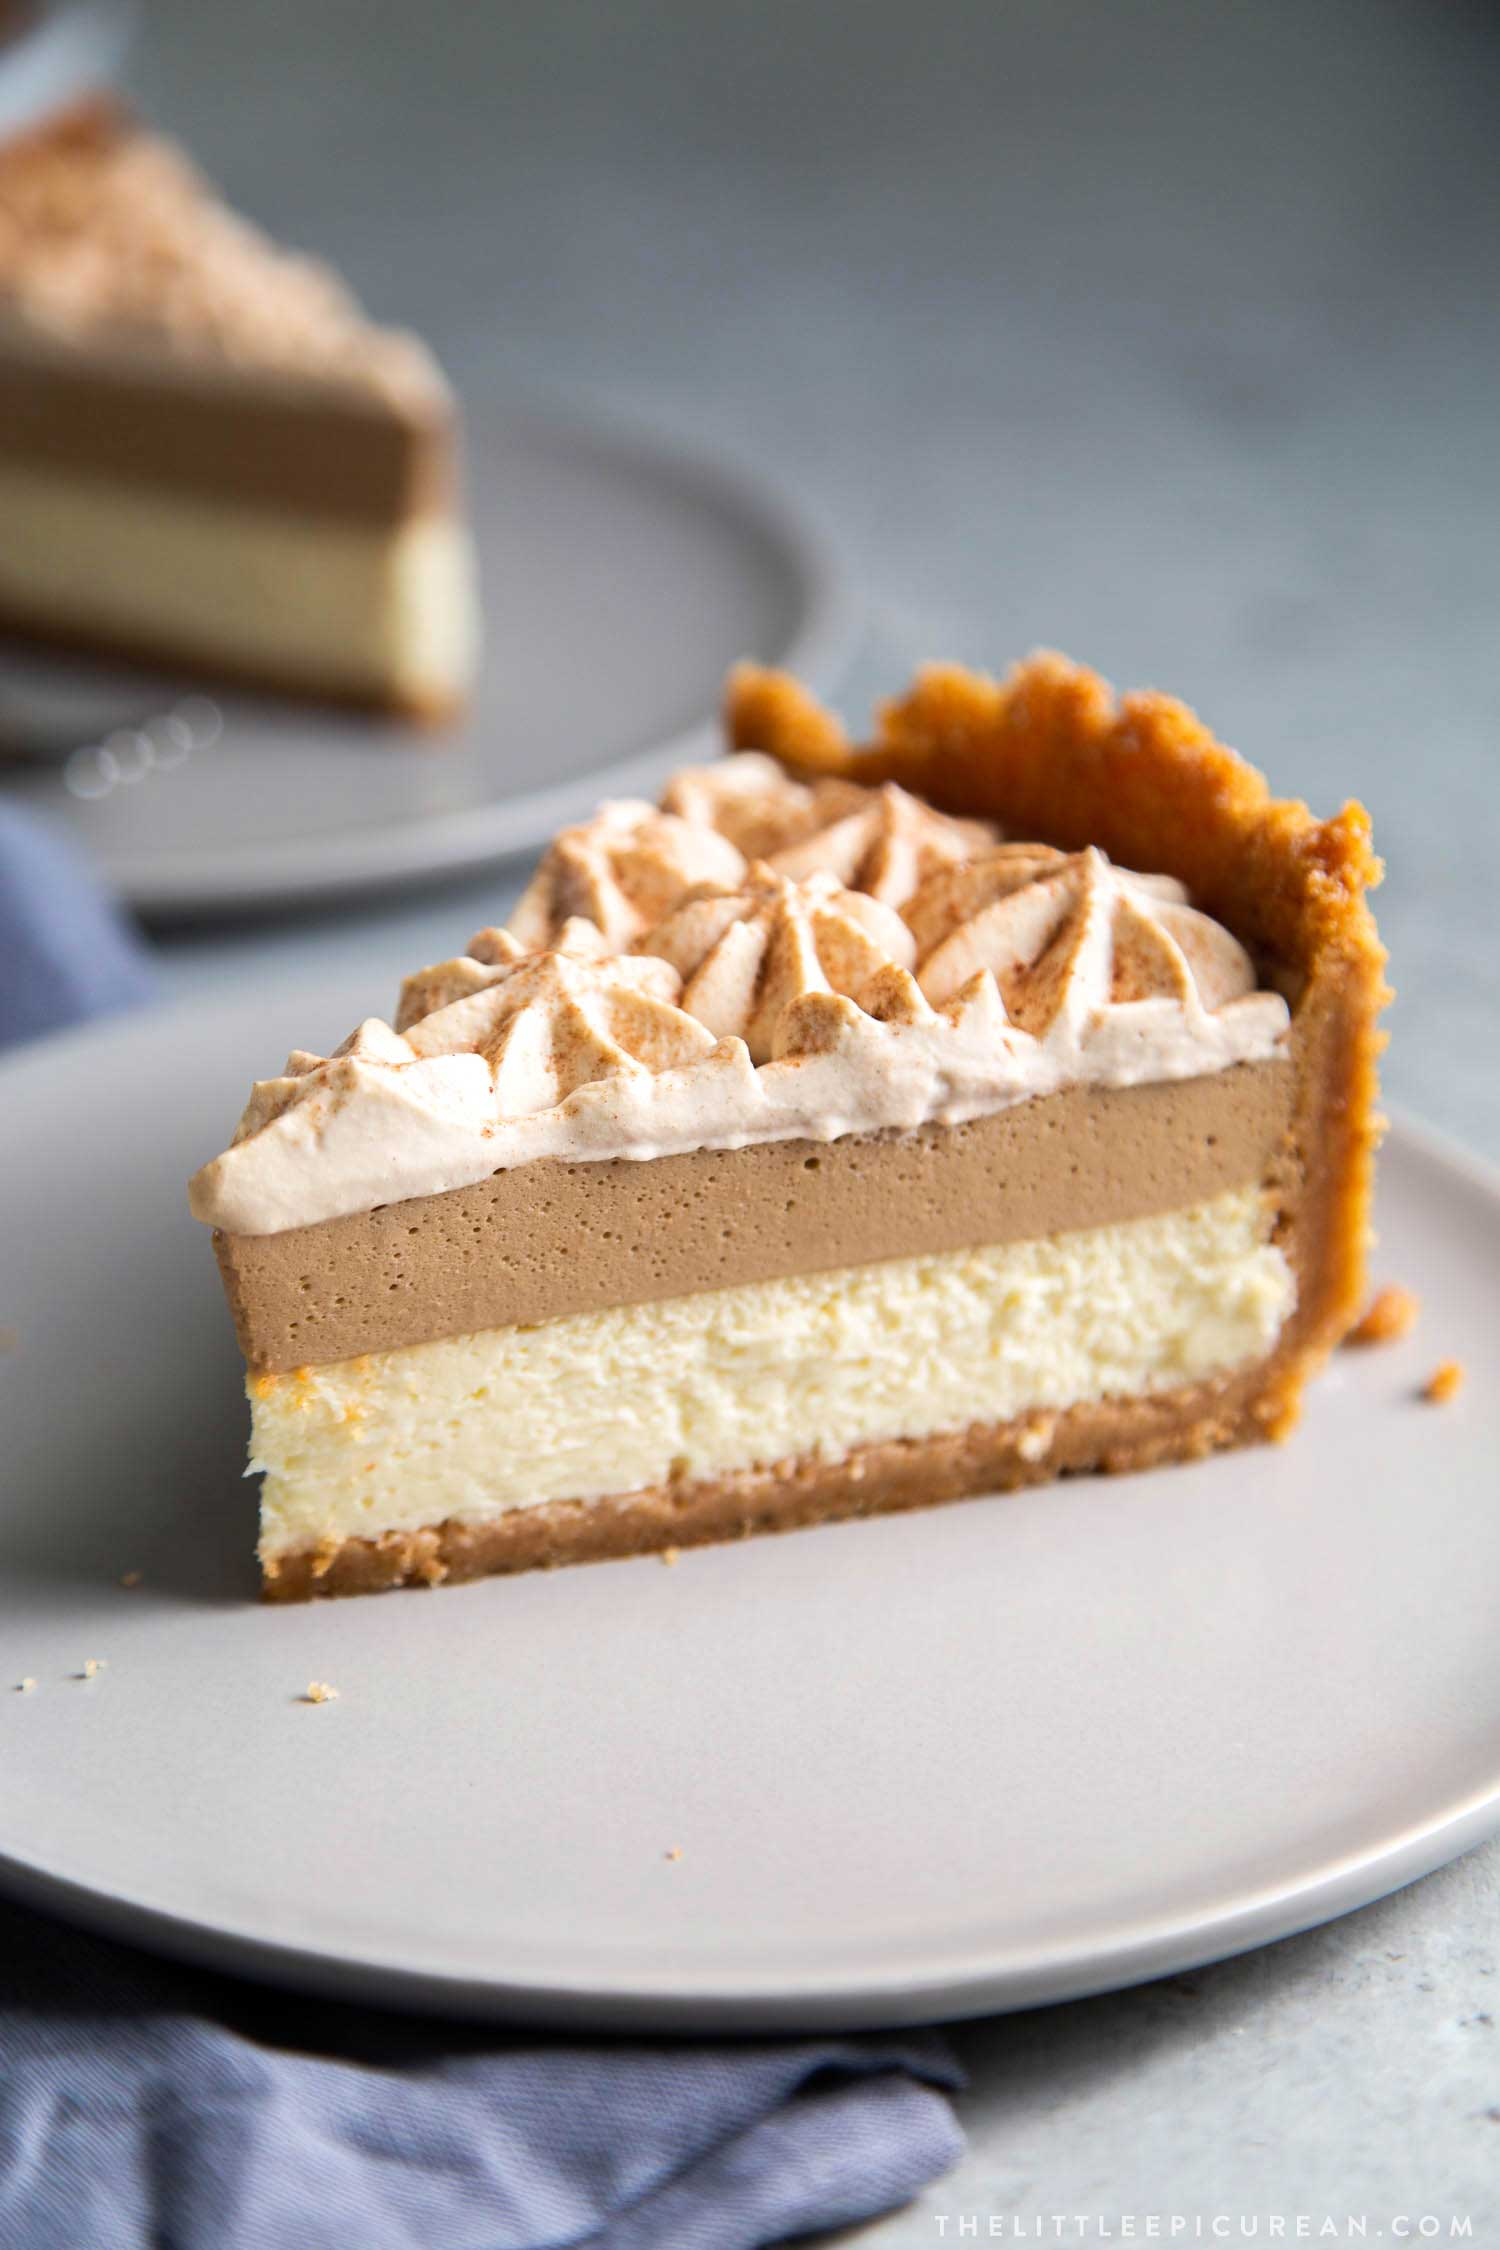 Coffee Mousse Cheesecake. Graham cracker crust, silky cheesecake layer topped with coffee mousse and whipped cream.